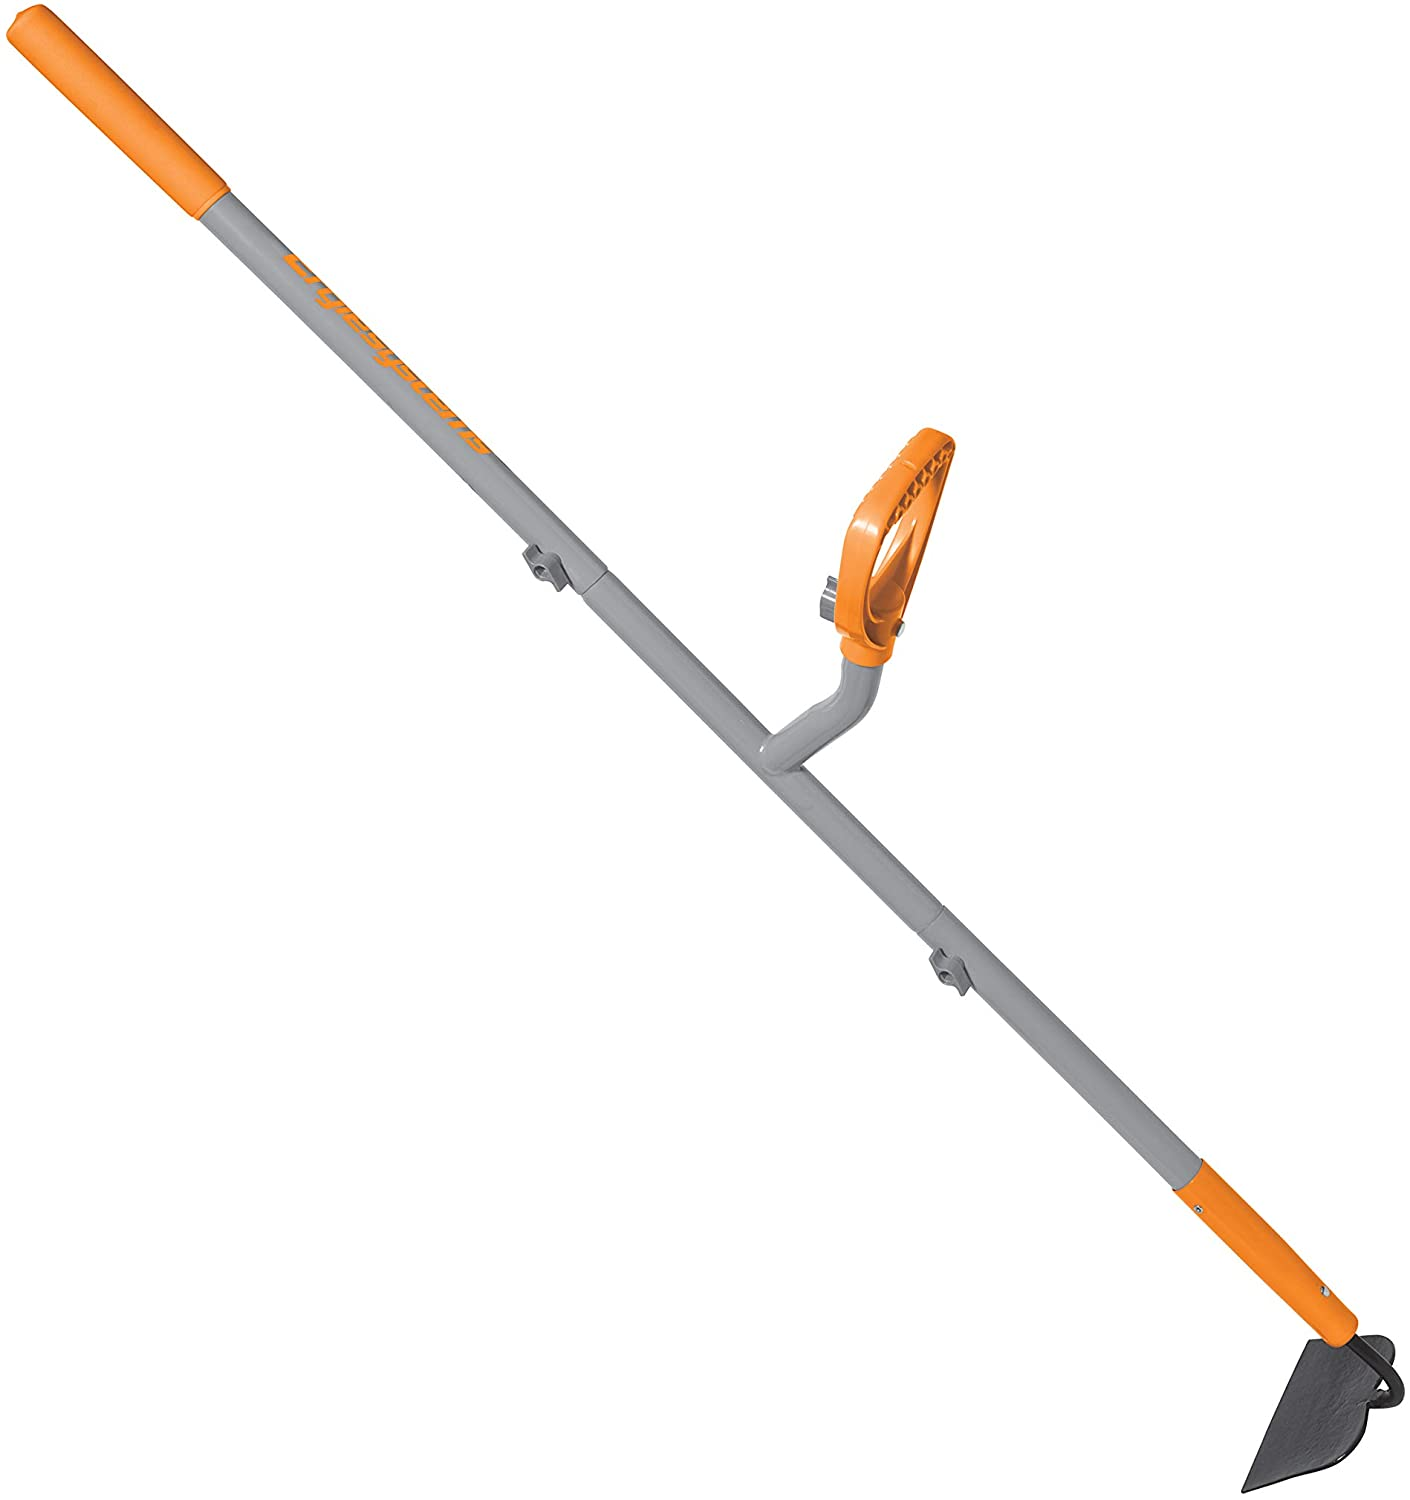 ERGIE SYSTEMS ERG-GHOE625 ErgieShovel 12-Gauge, 54 Steel Shaft, 6.25-Inch Shank Pattern Blade Garden Hoe, Gray/Orange